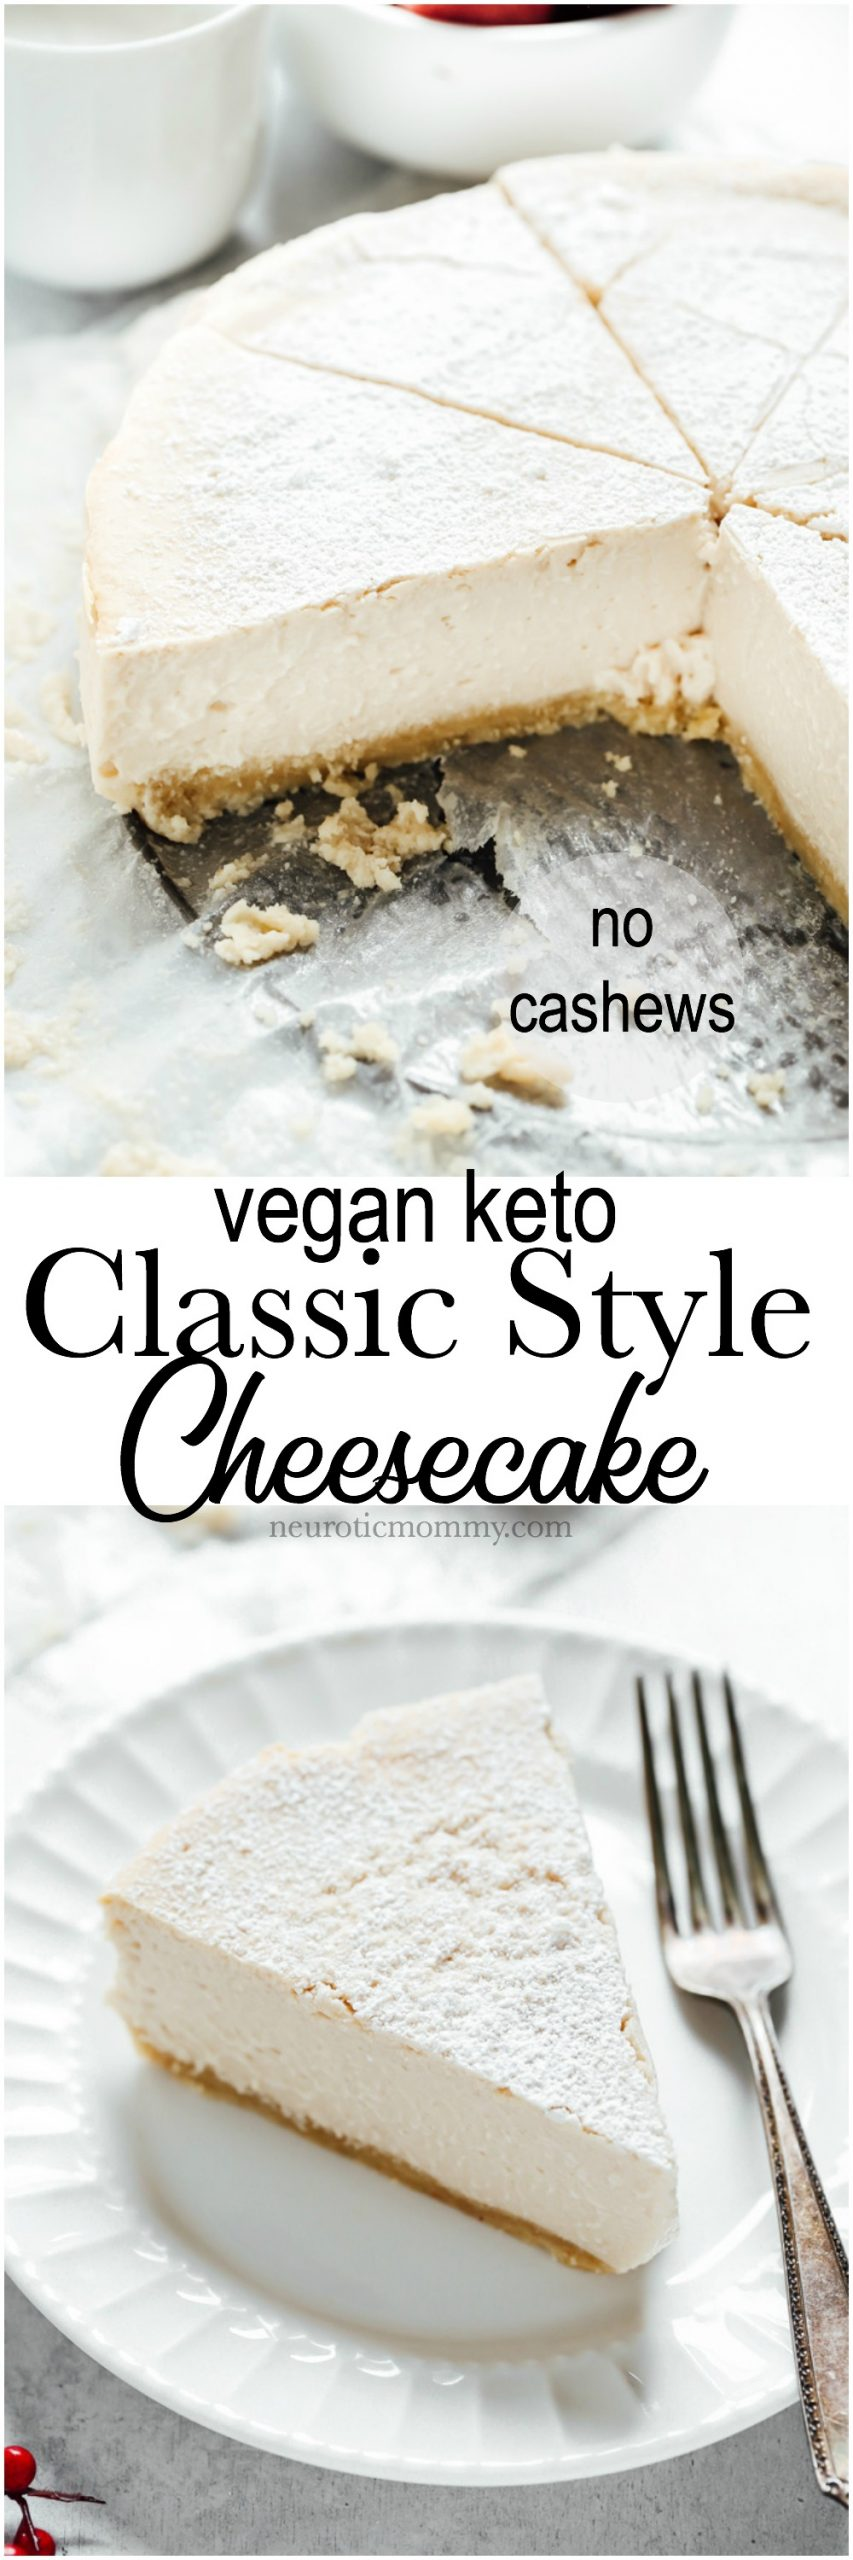 Vegan Keto Classic Style Cheesecake - A creamy plain cheesecake with a delicious buttery crust. Super easy and will be eaten by anyone, it's that good. Neuroticmommy.com #vegan #veganketo #cheesecake #christmas #holidays